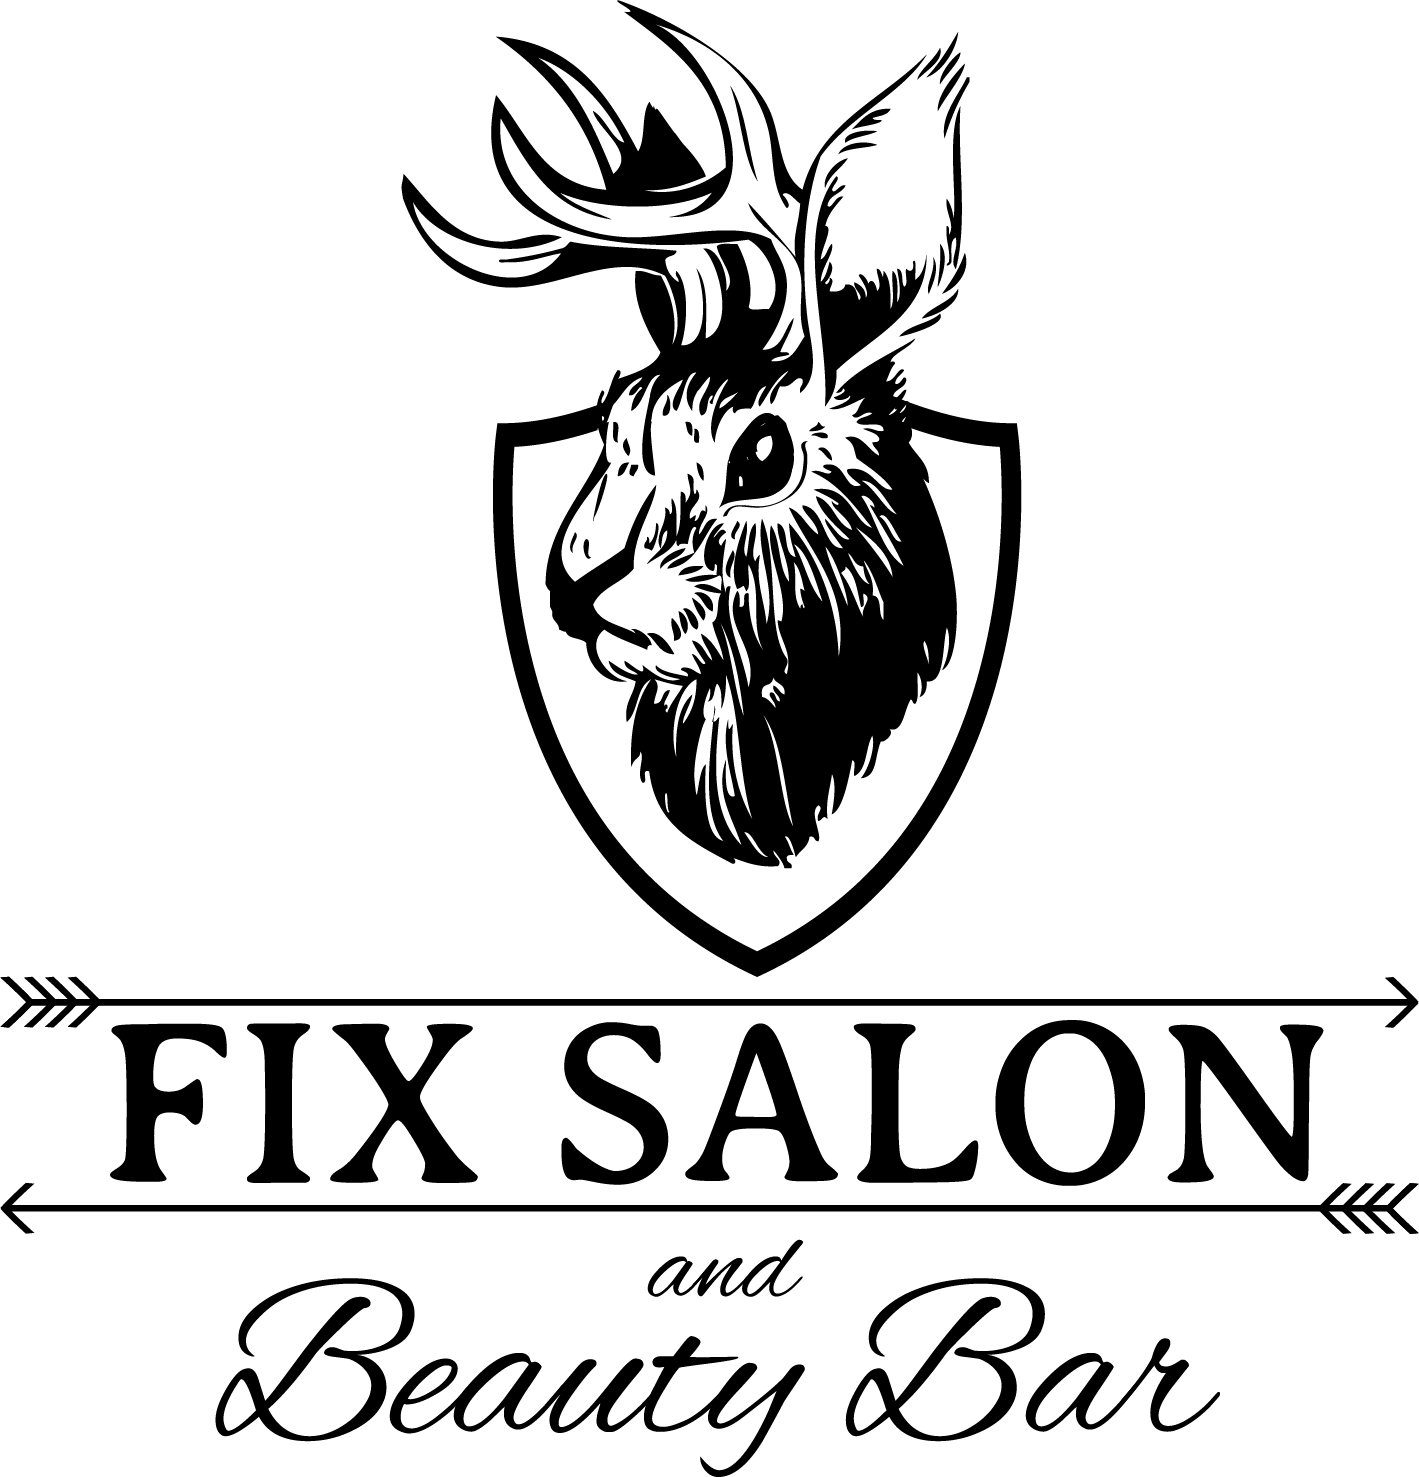 Salon clipart salon store. Fix buy products